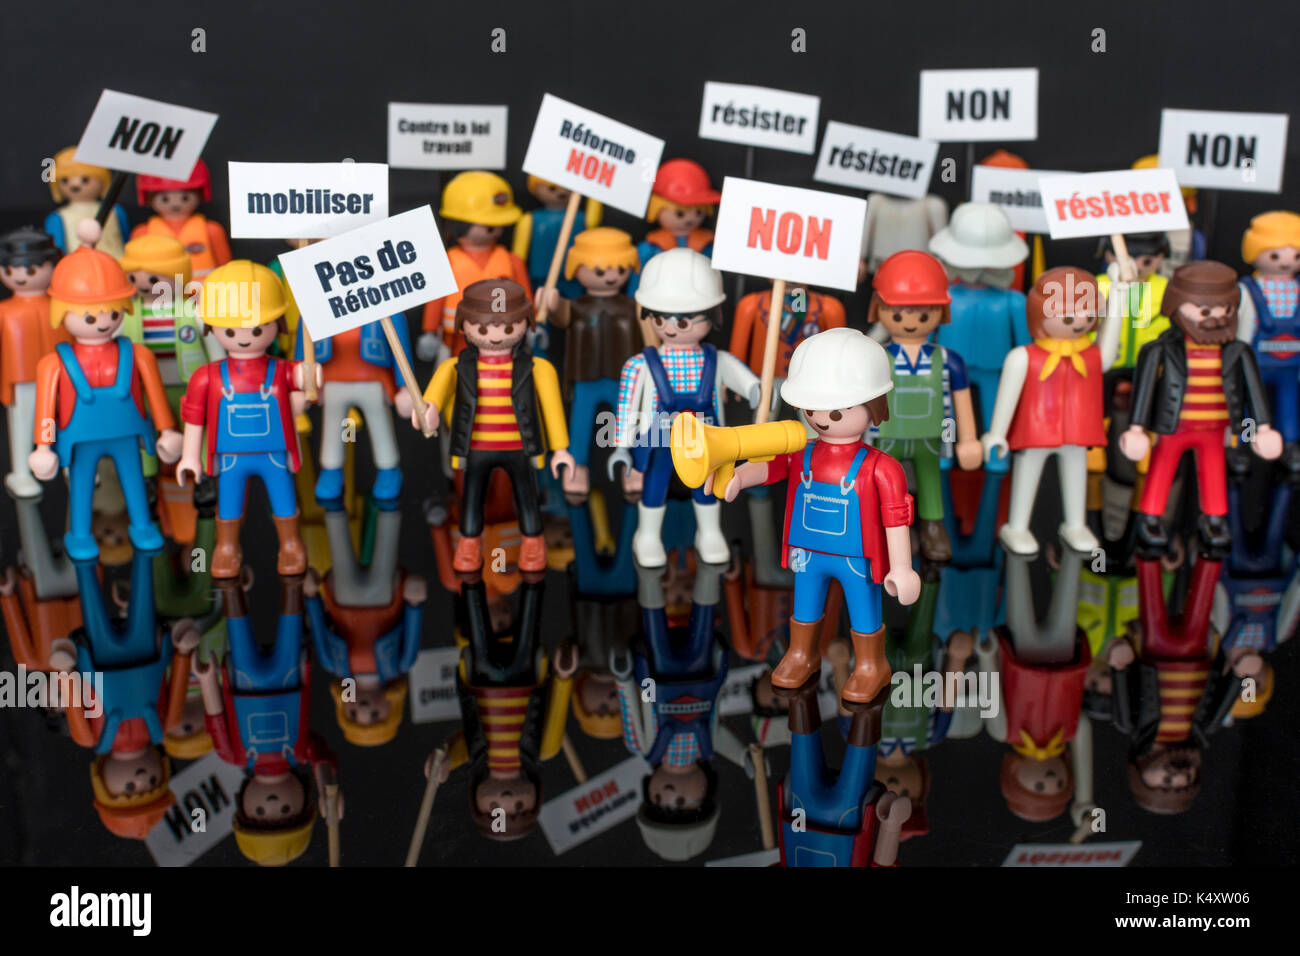 Toy figures lined up in Manif Loi Travail demo - metaphor for Strikes & CGT union's SNCF demonstrations against Stock Photo